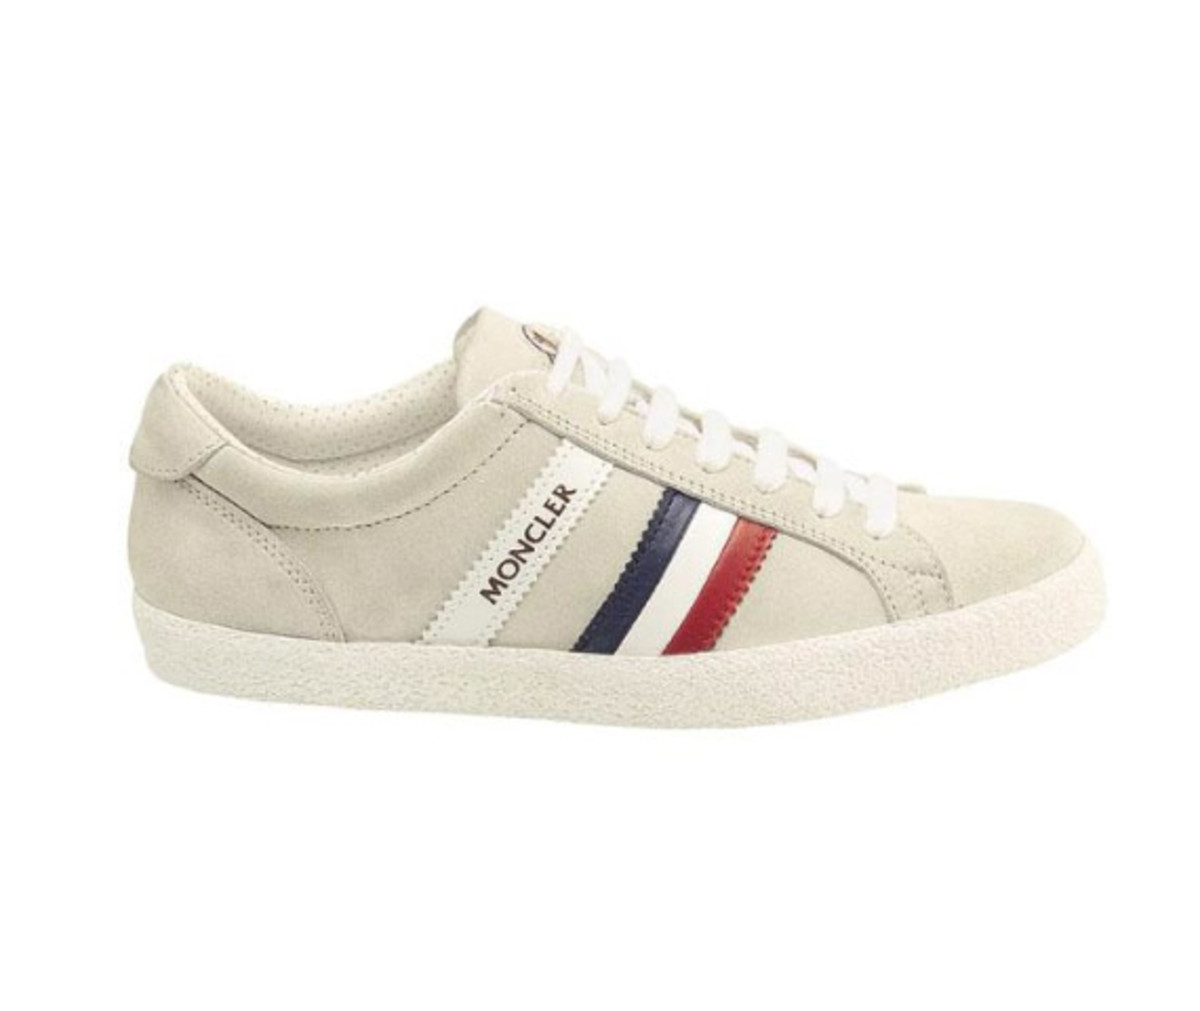 moncler-ss10-sneakers-collection-3